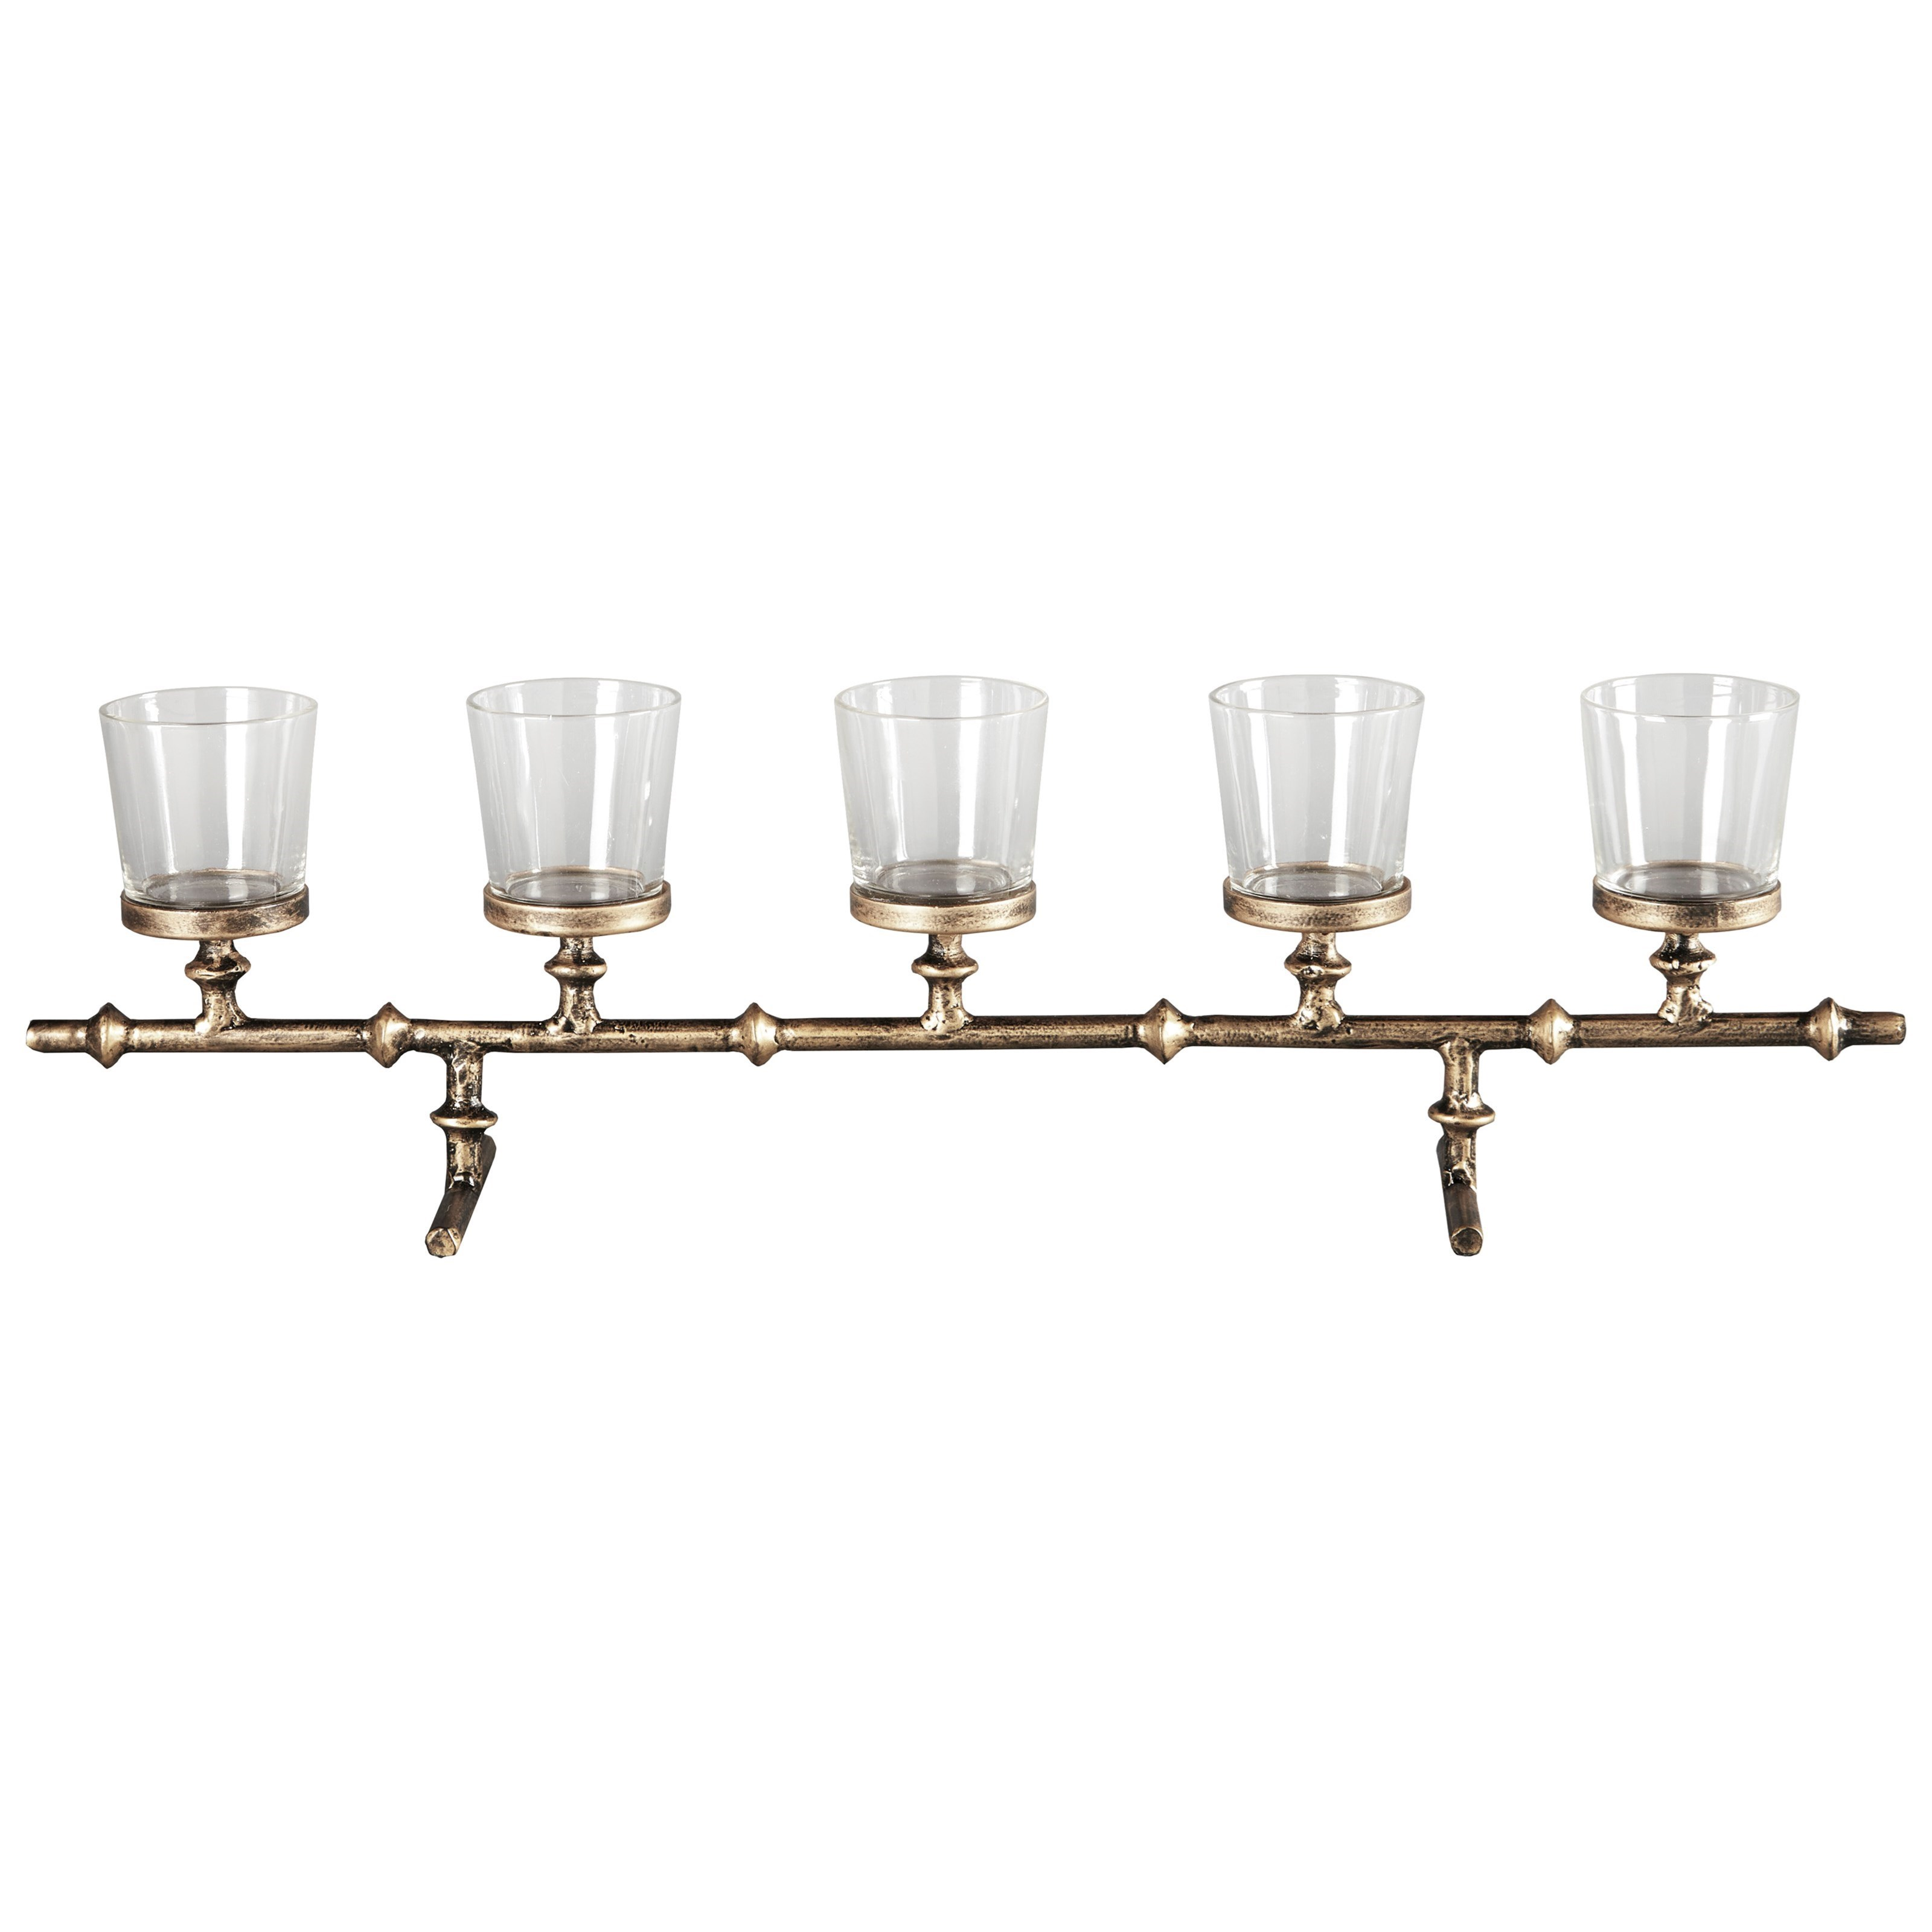 Accents Obasi Antique Gold Finish Candle Holder by Ashley Furniture Signature Design at Del Sol Furniture